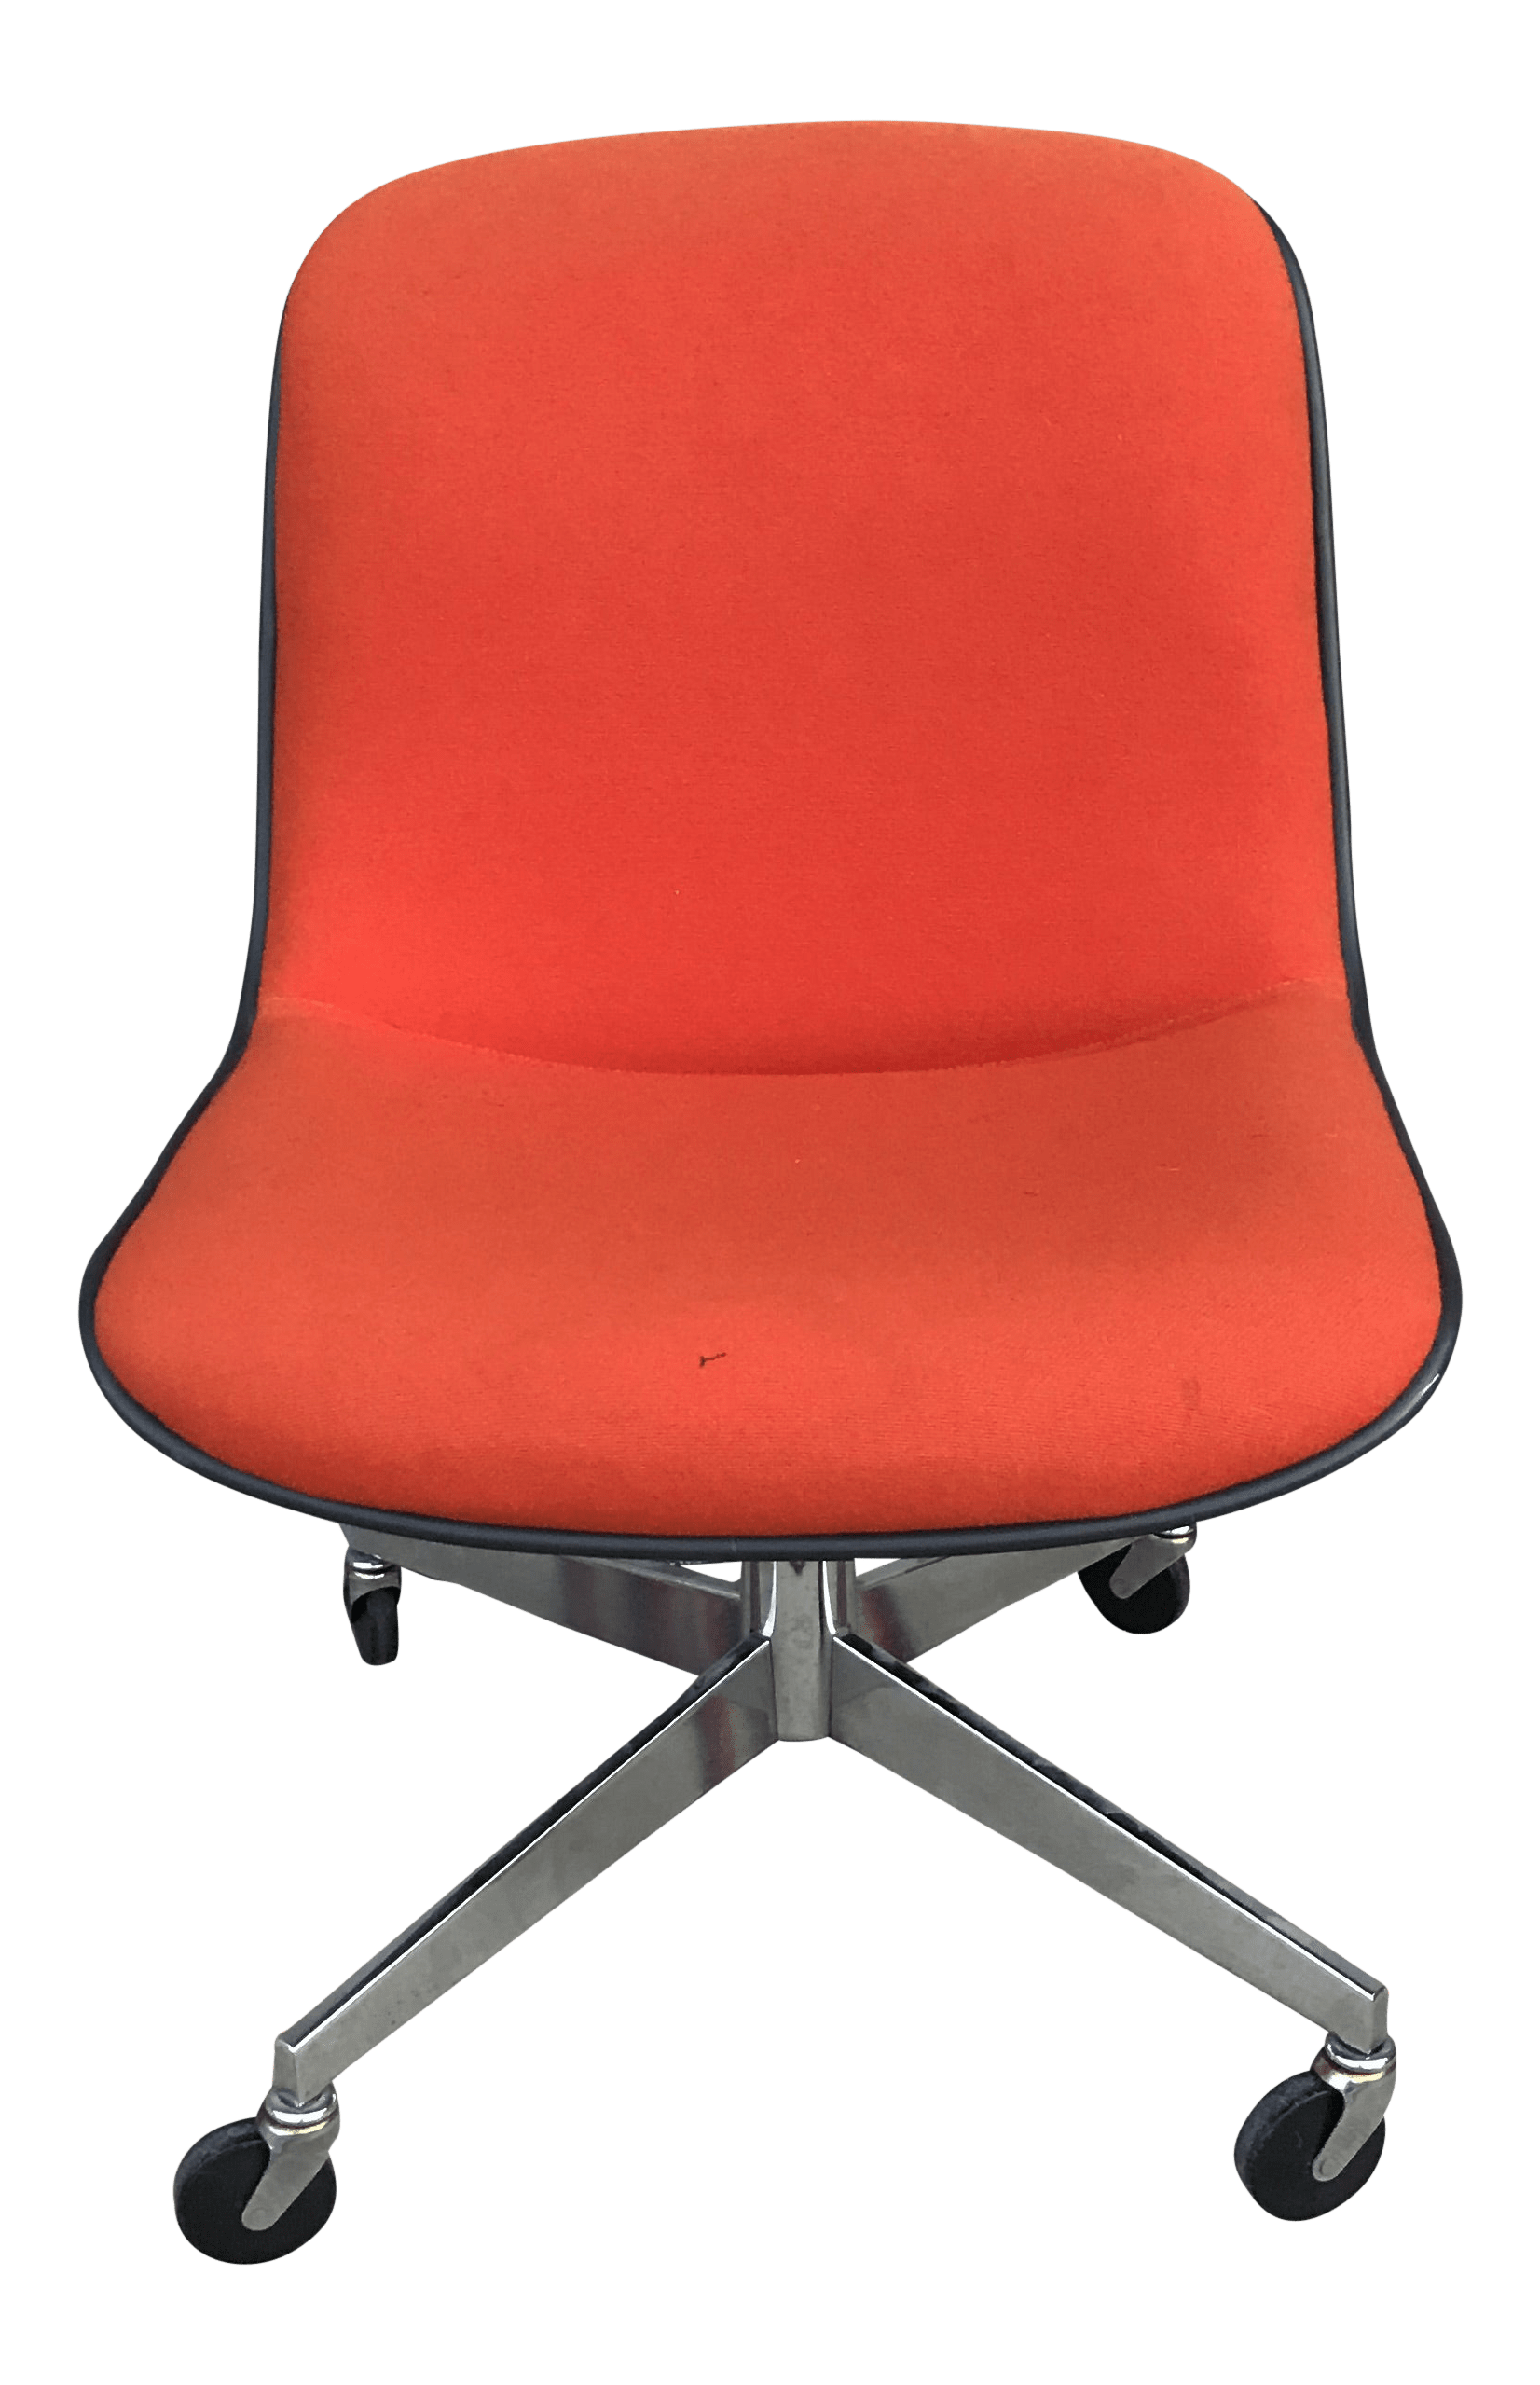 1970s Vintage Steelcase For Knoll Orange Office Chair Chairish